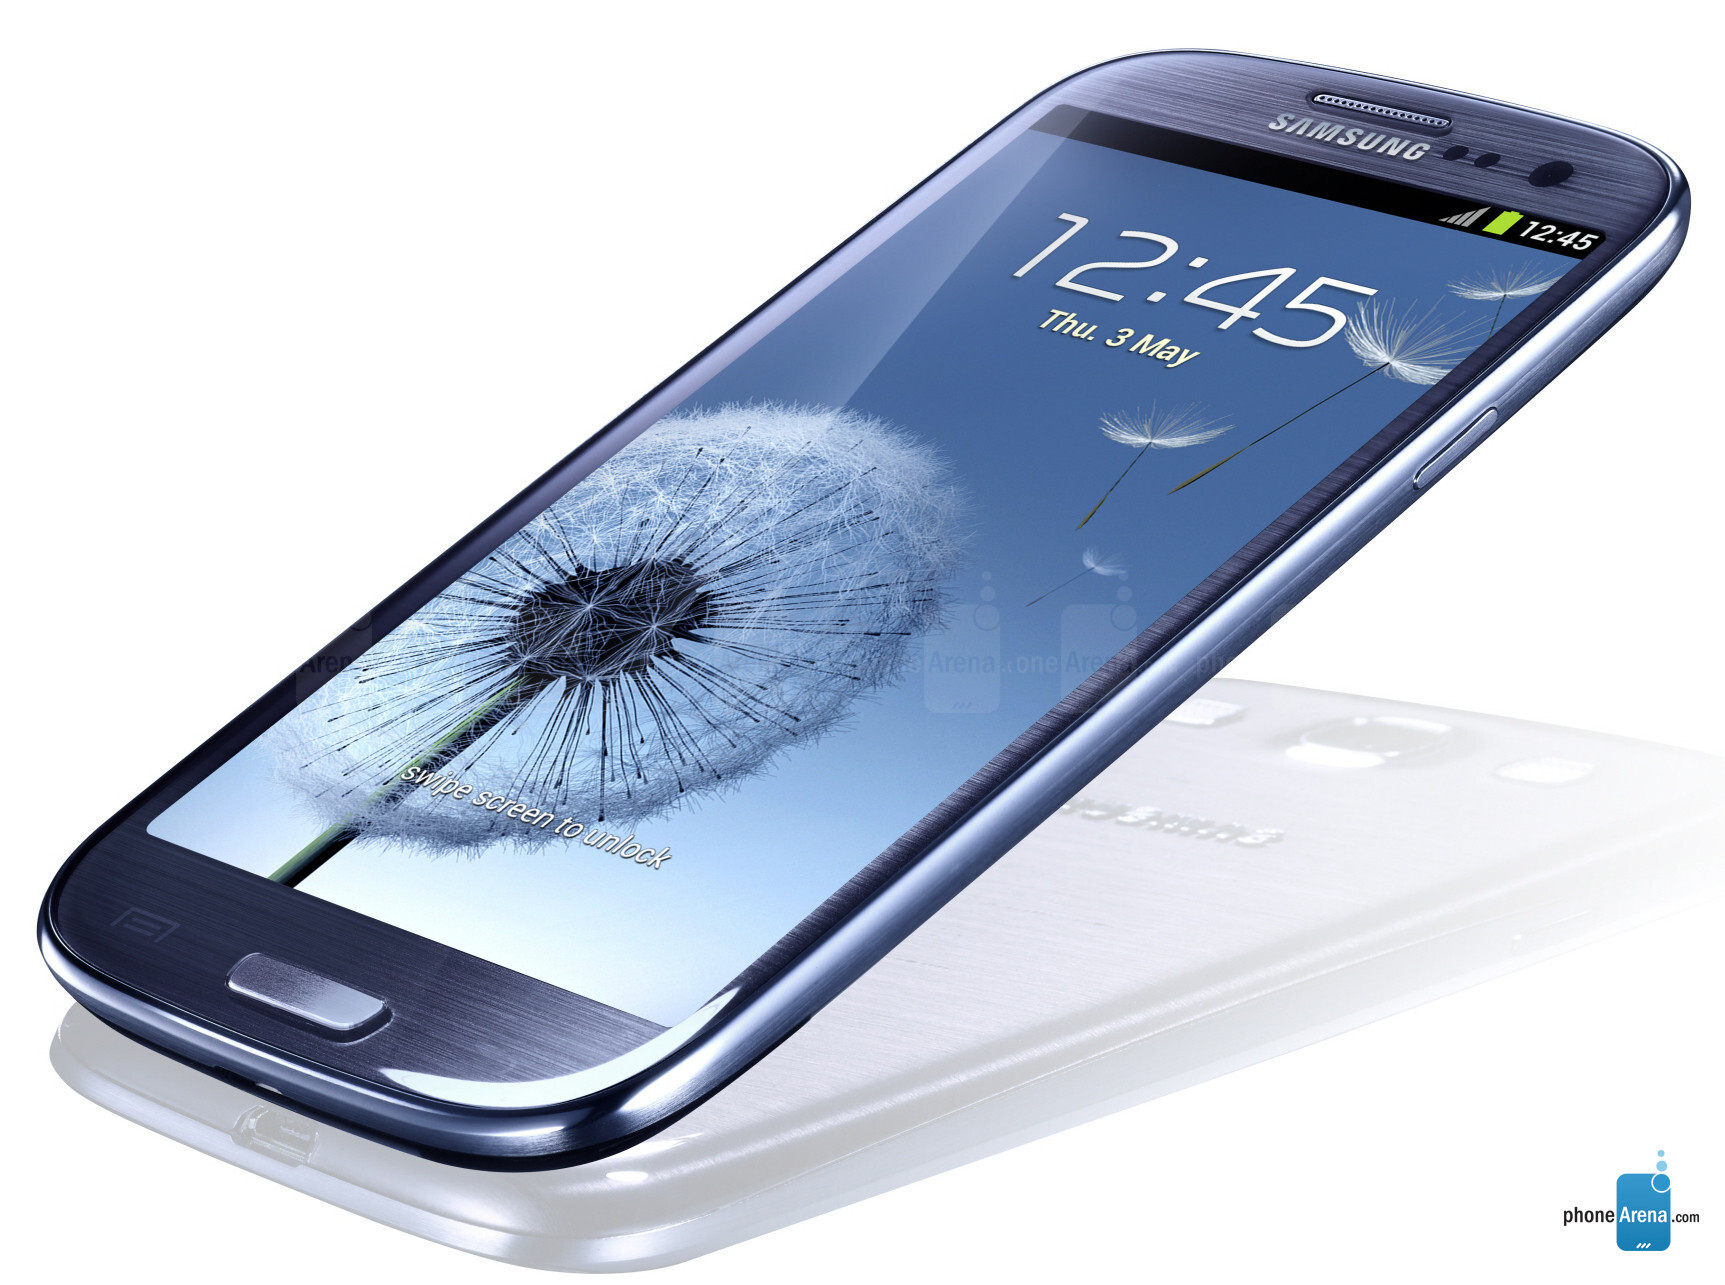 samsung galaxy s iii sprint specs. Black Bedroom Furniture Sets. Home Design Ideas